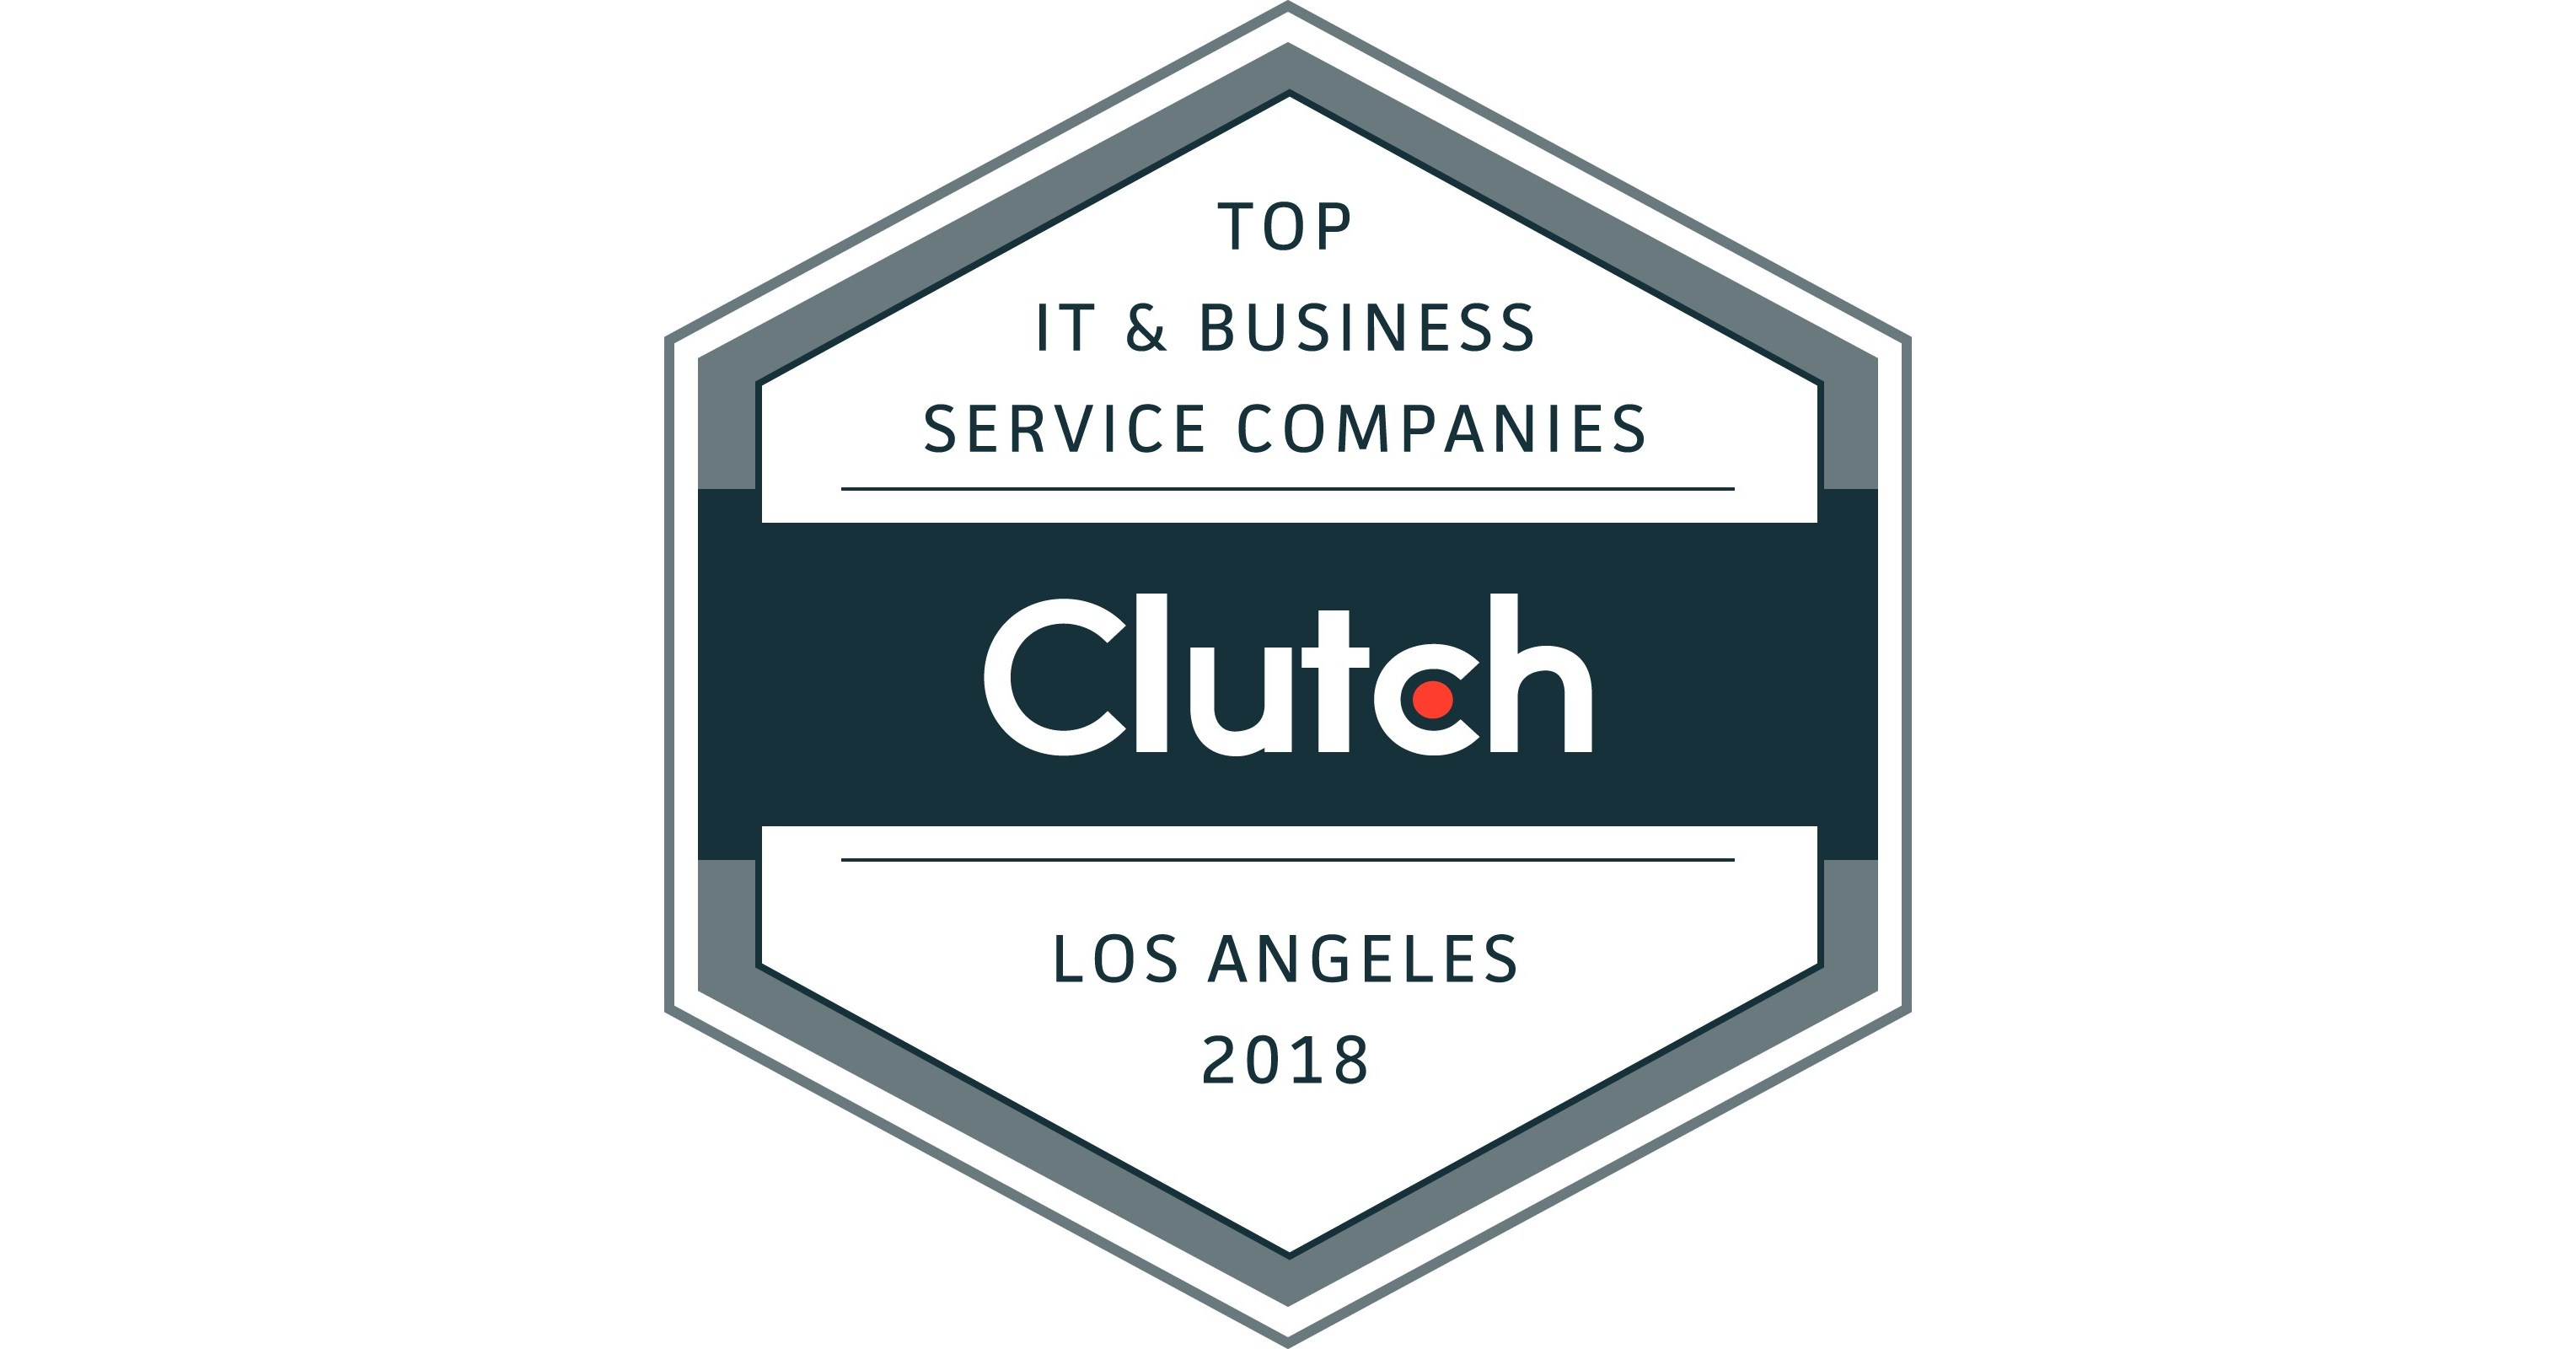 Clutch Announces Top Marketing & Advertising Agencies and IT & Business Service Providers in Los